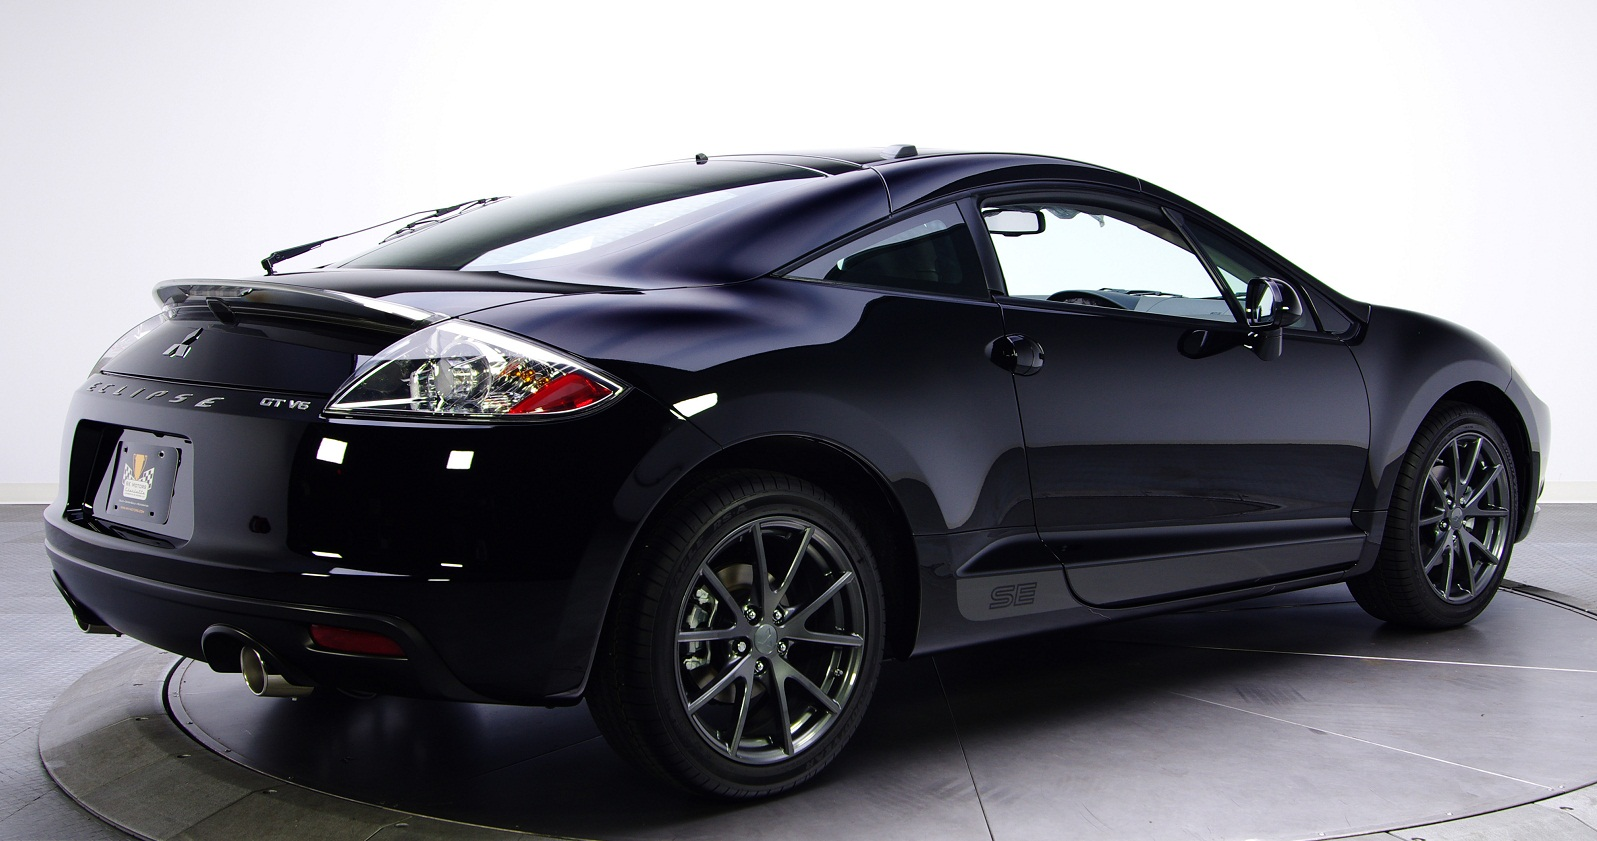 2012 Mitsubishi Eclipse SE Final Model | Top Speed. »